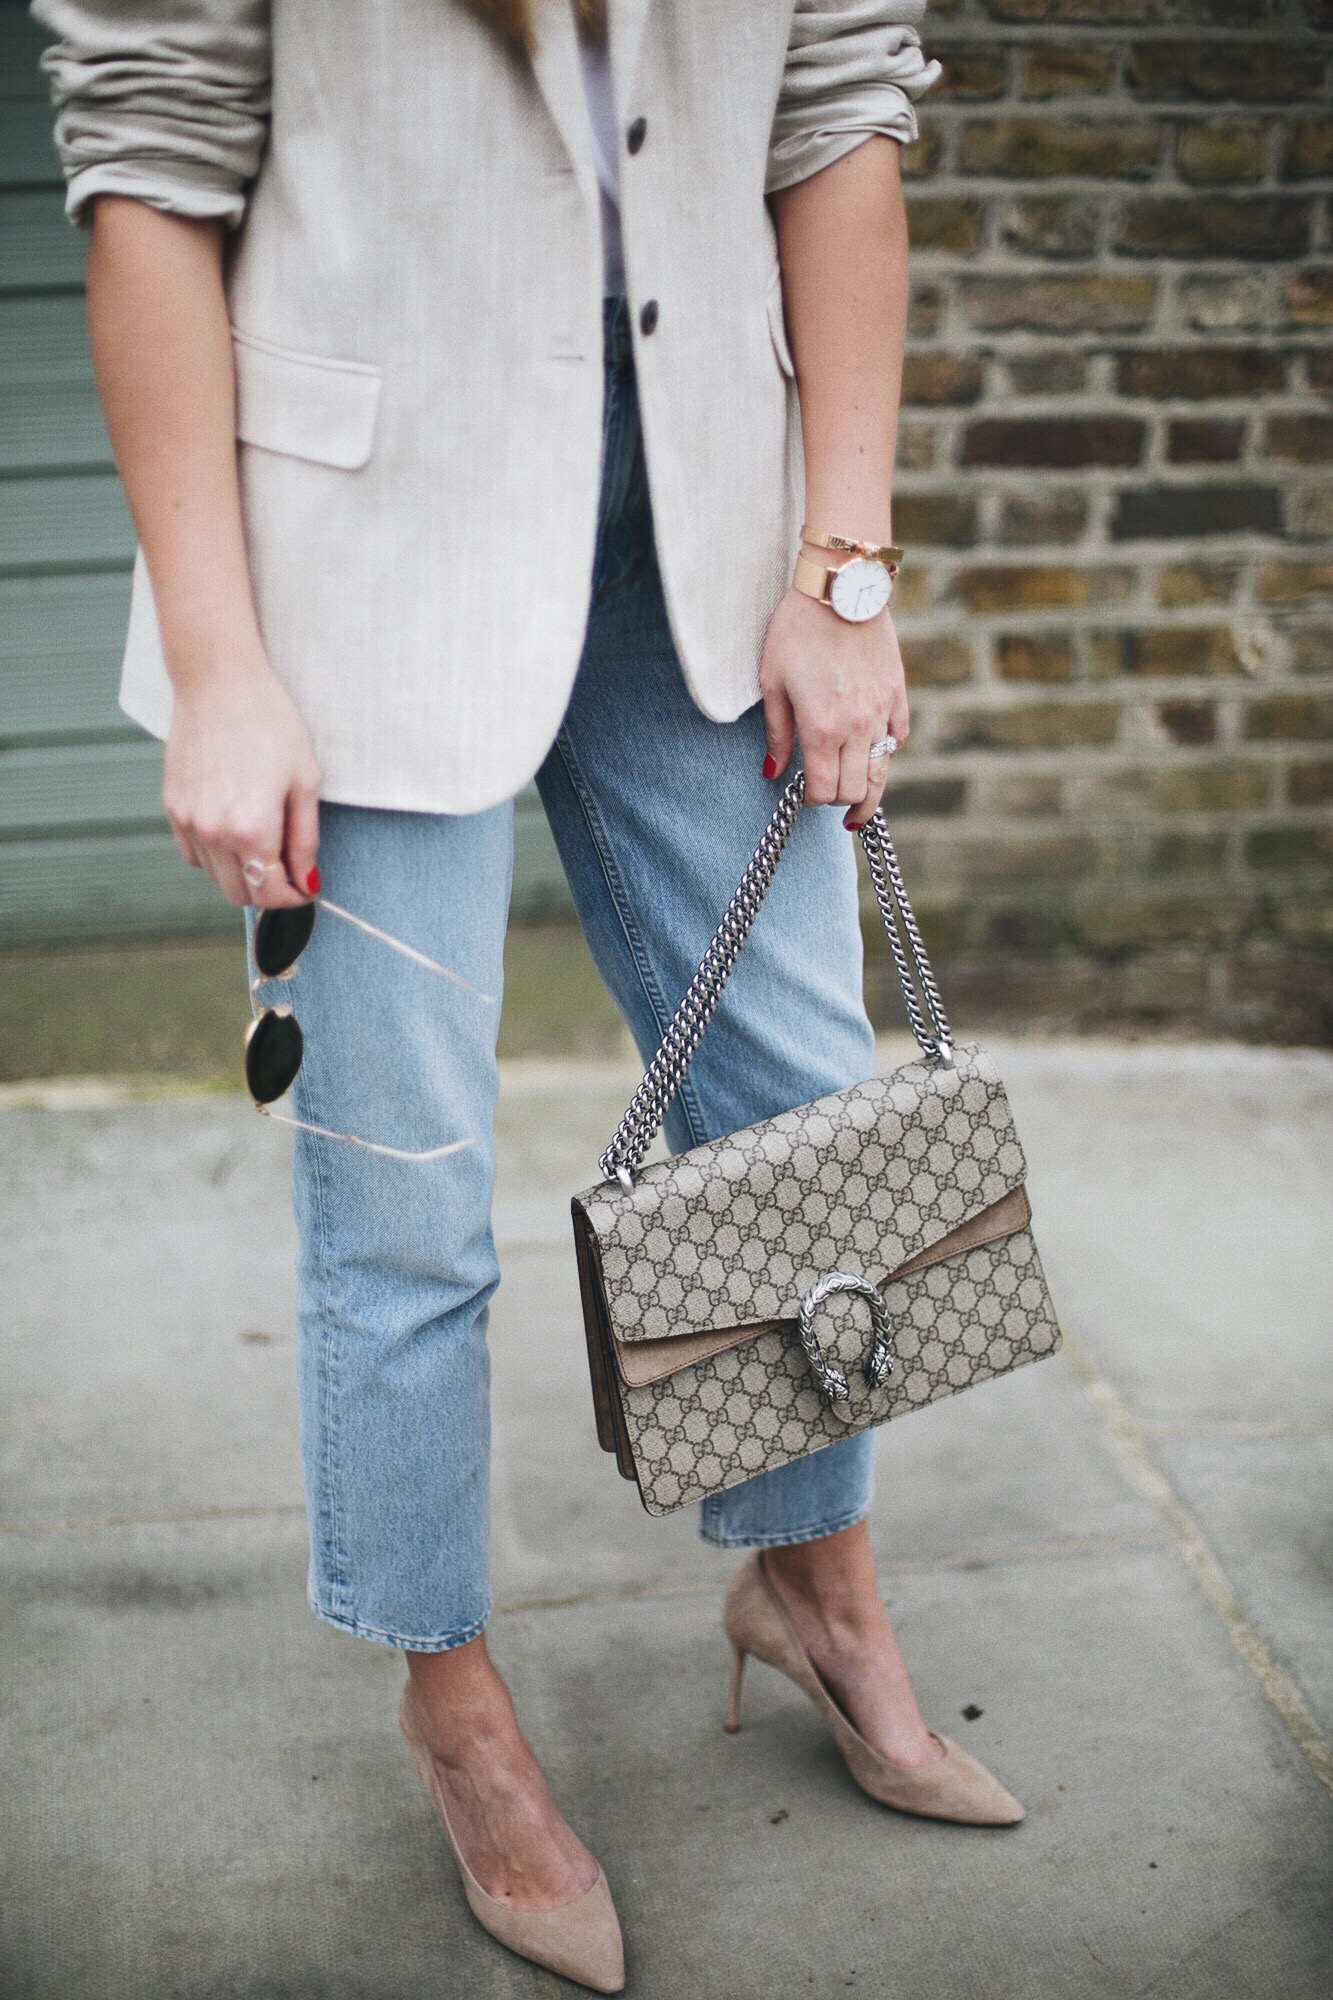 beige linen blazer, light wash high waisted jeans, Gucci medium beige Dionysus bag, small arm tattoo, rose gold accessories, beige suede Jimmy Choo pumps